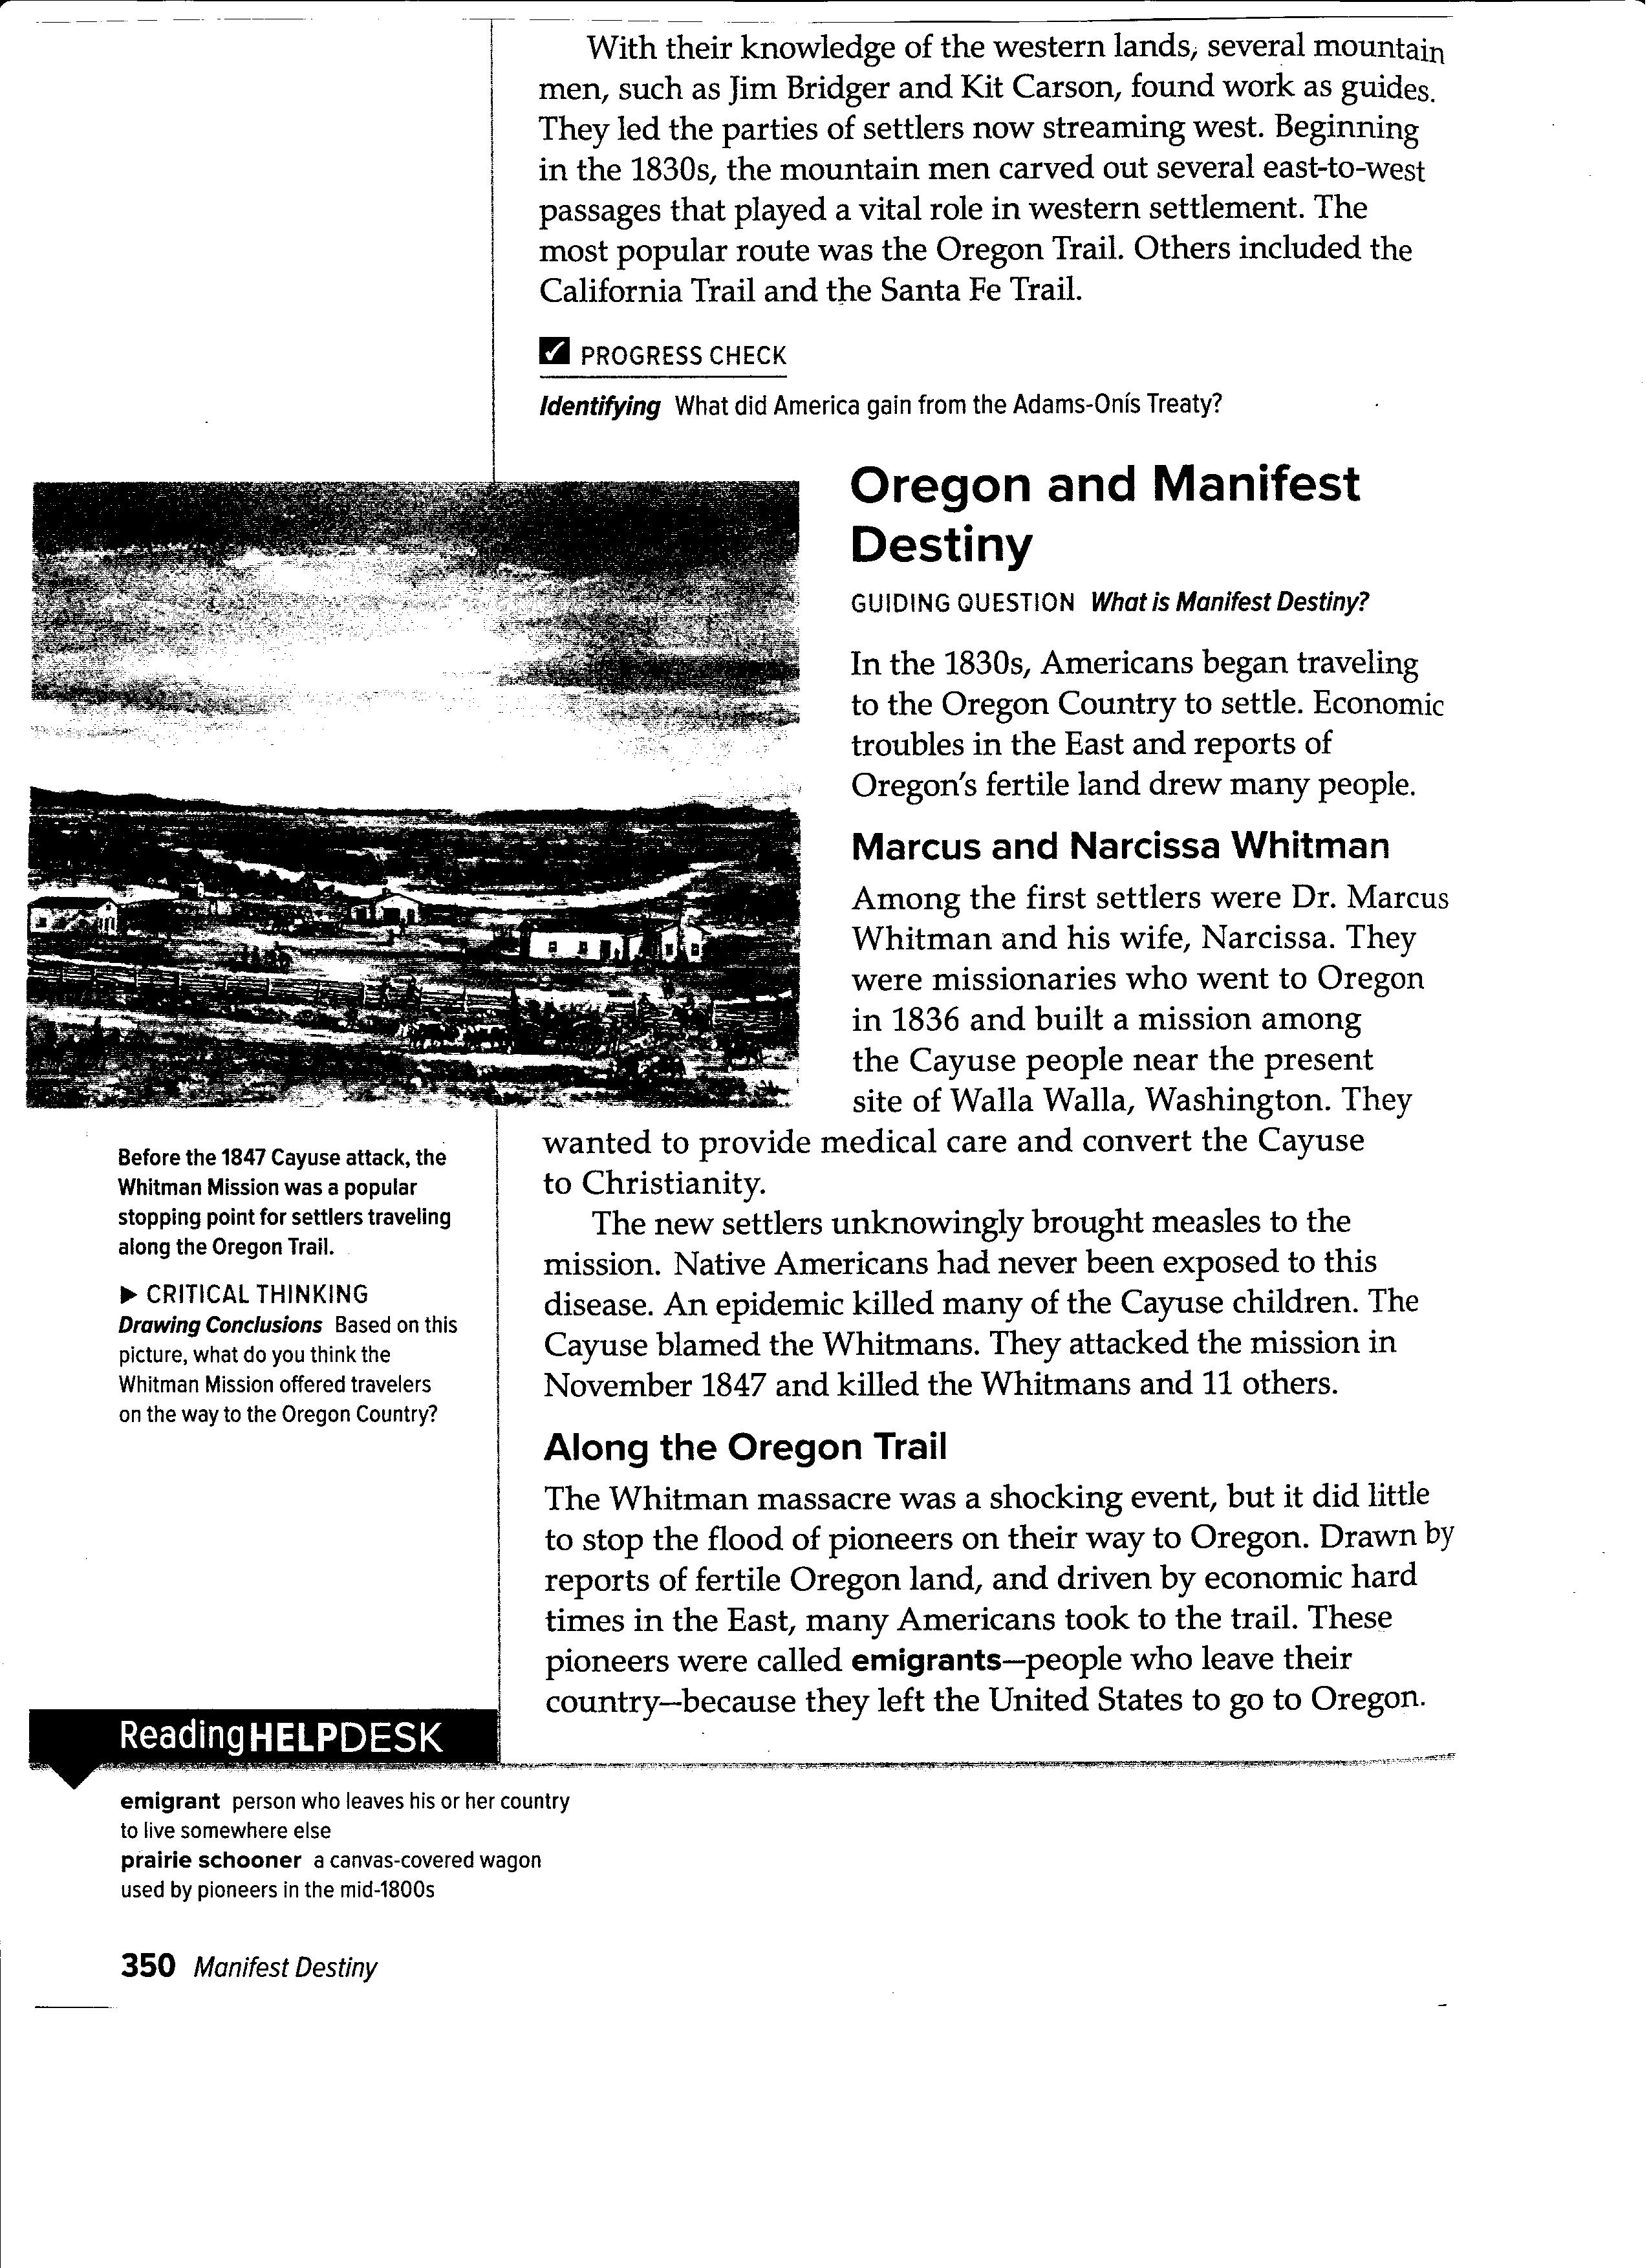 worksheet Manifest Destiny Worksheet obregon jose notes assignments ch 13 lesson 1 3 activity activity